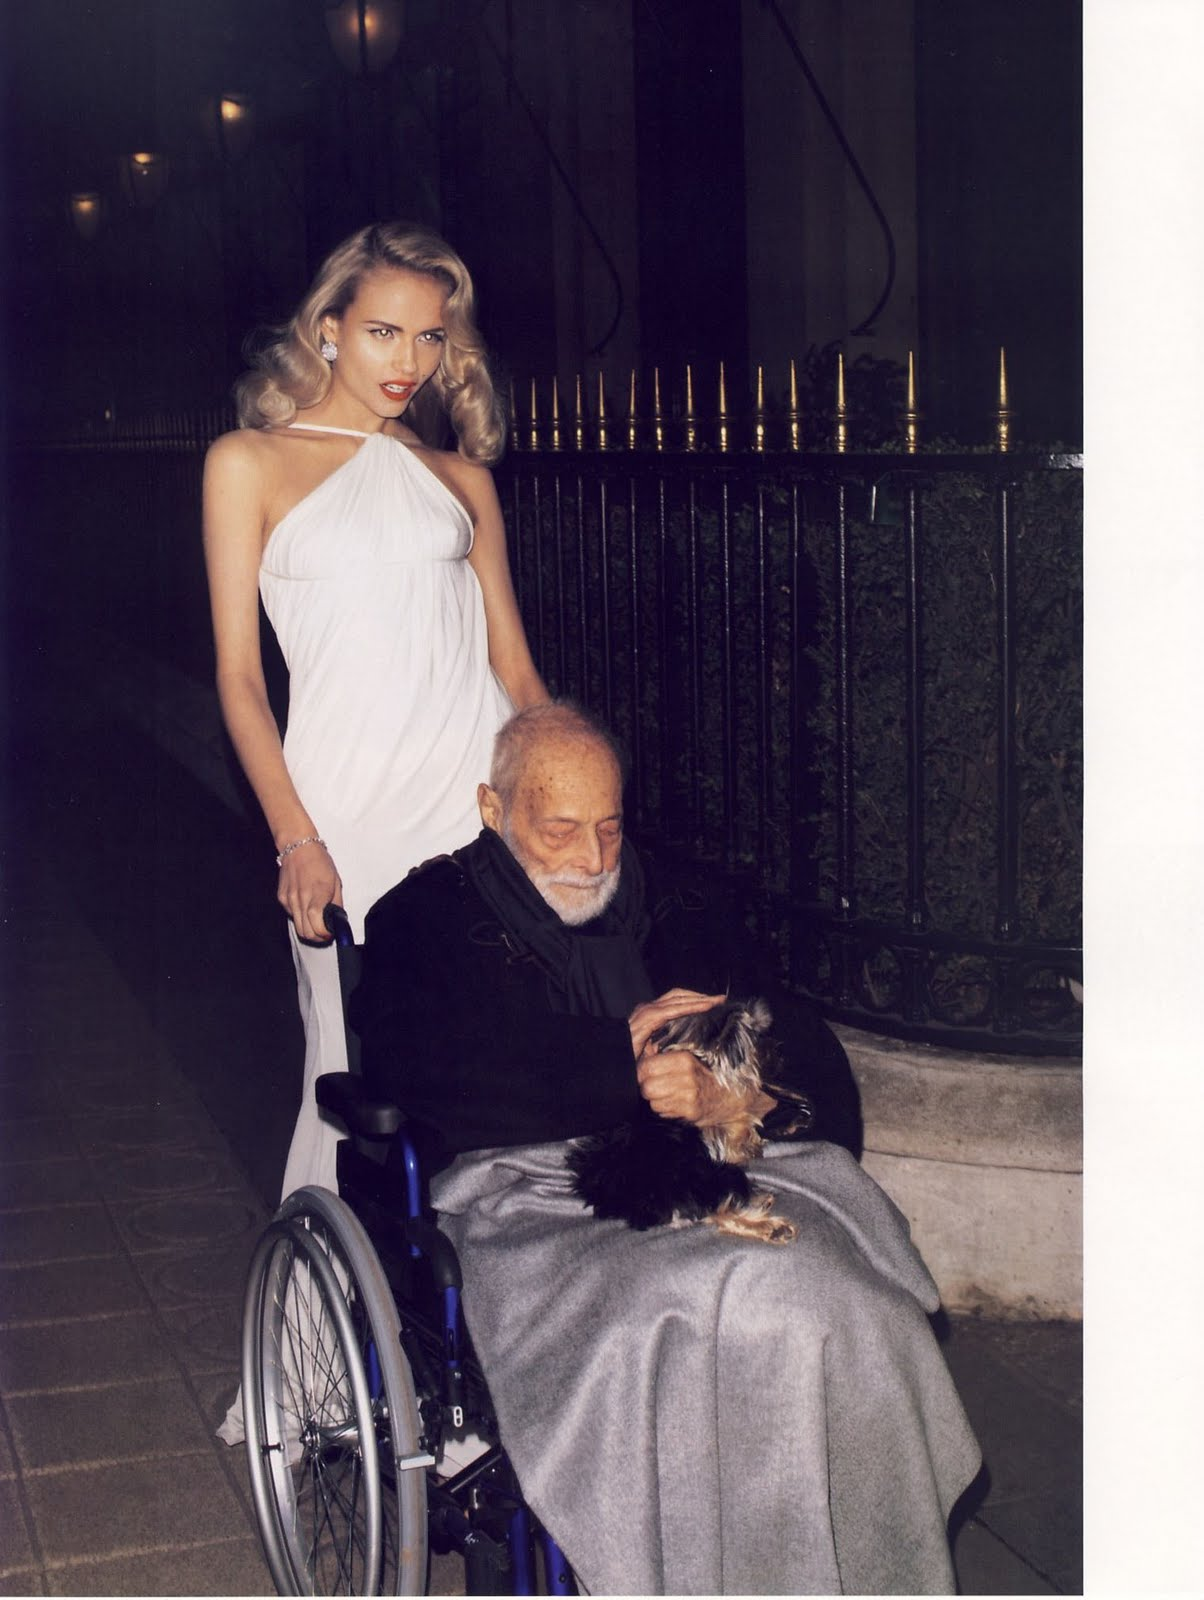 Citizen chic natasha poly just married for Married sugar daddy